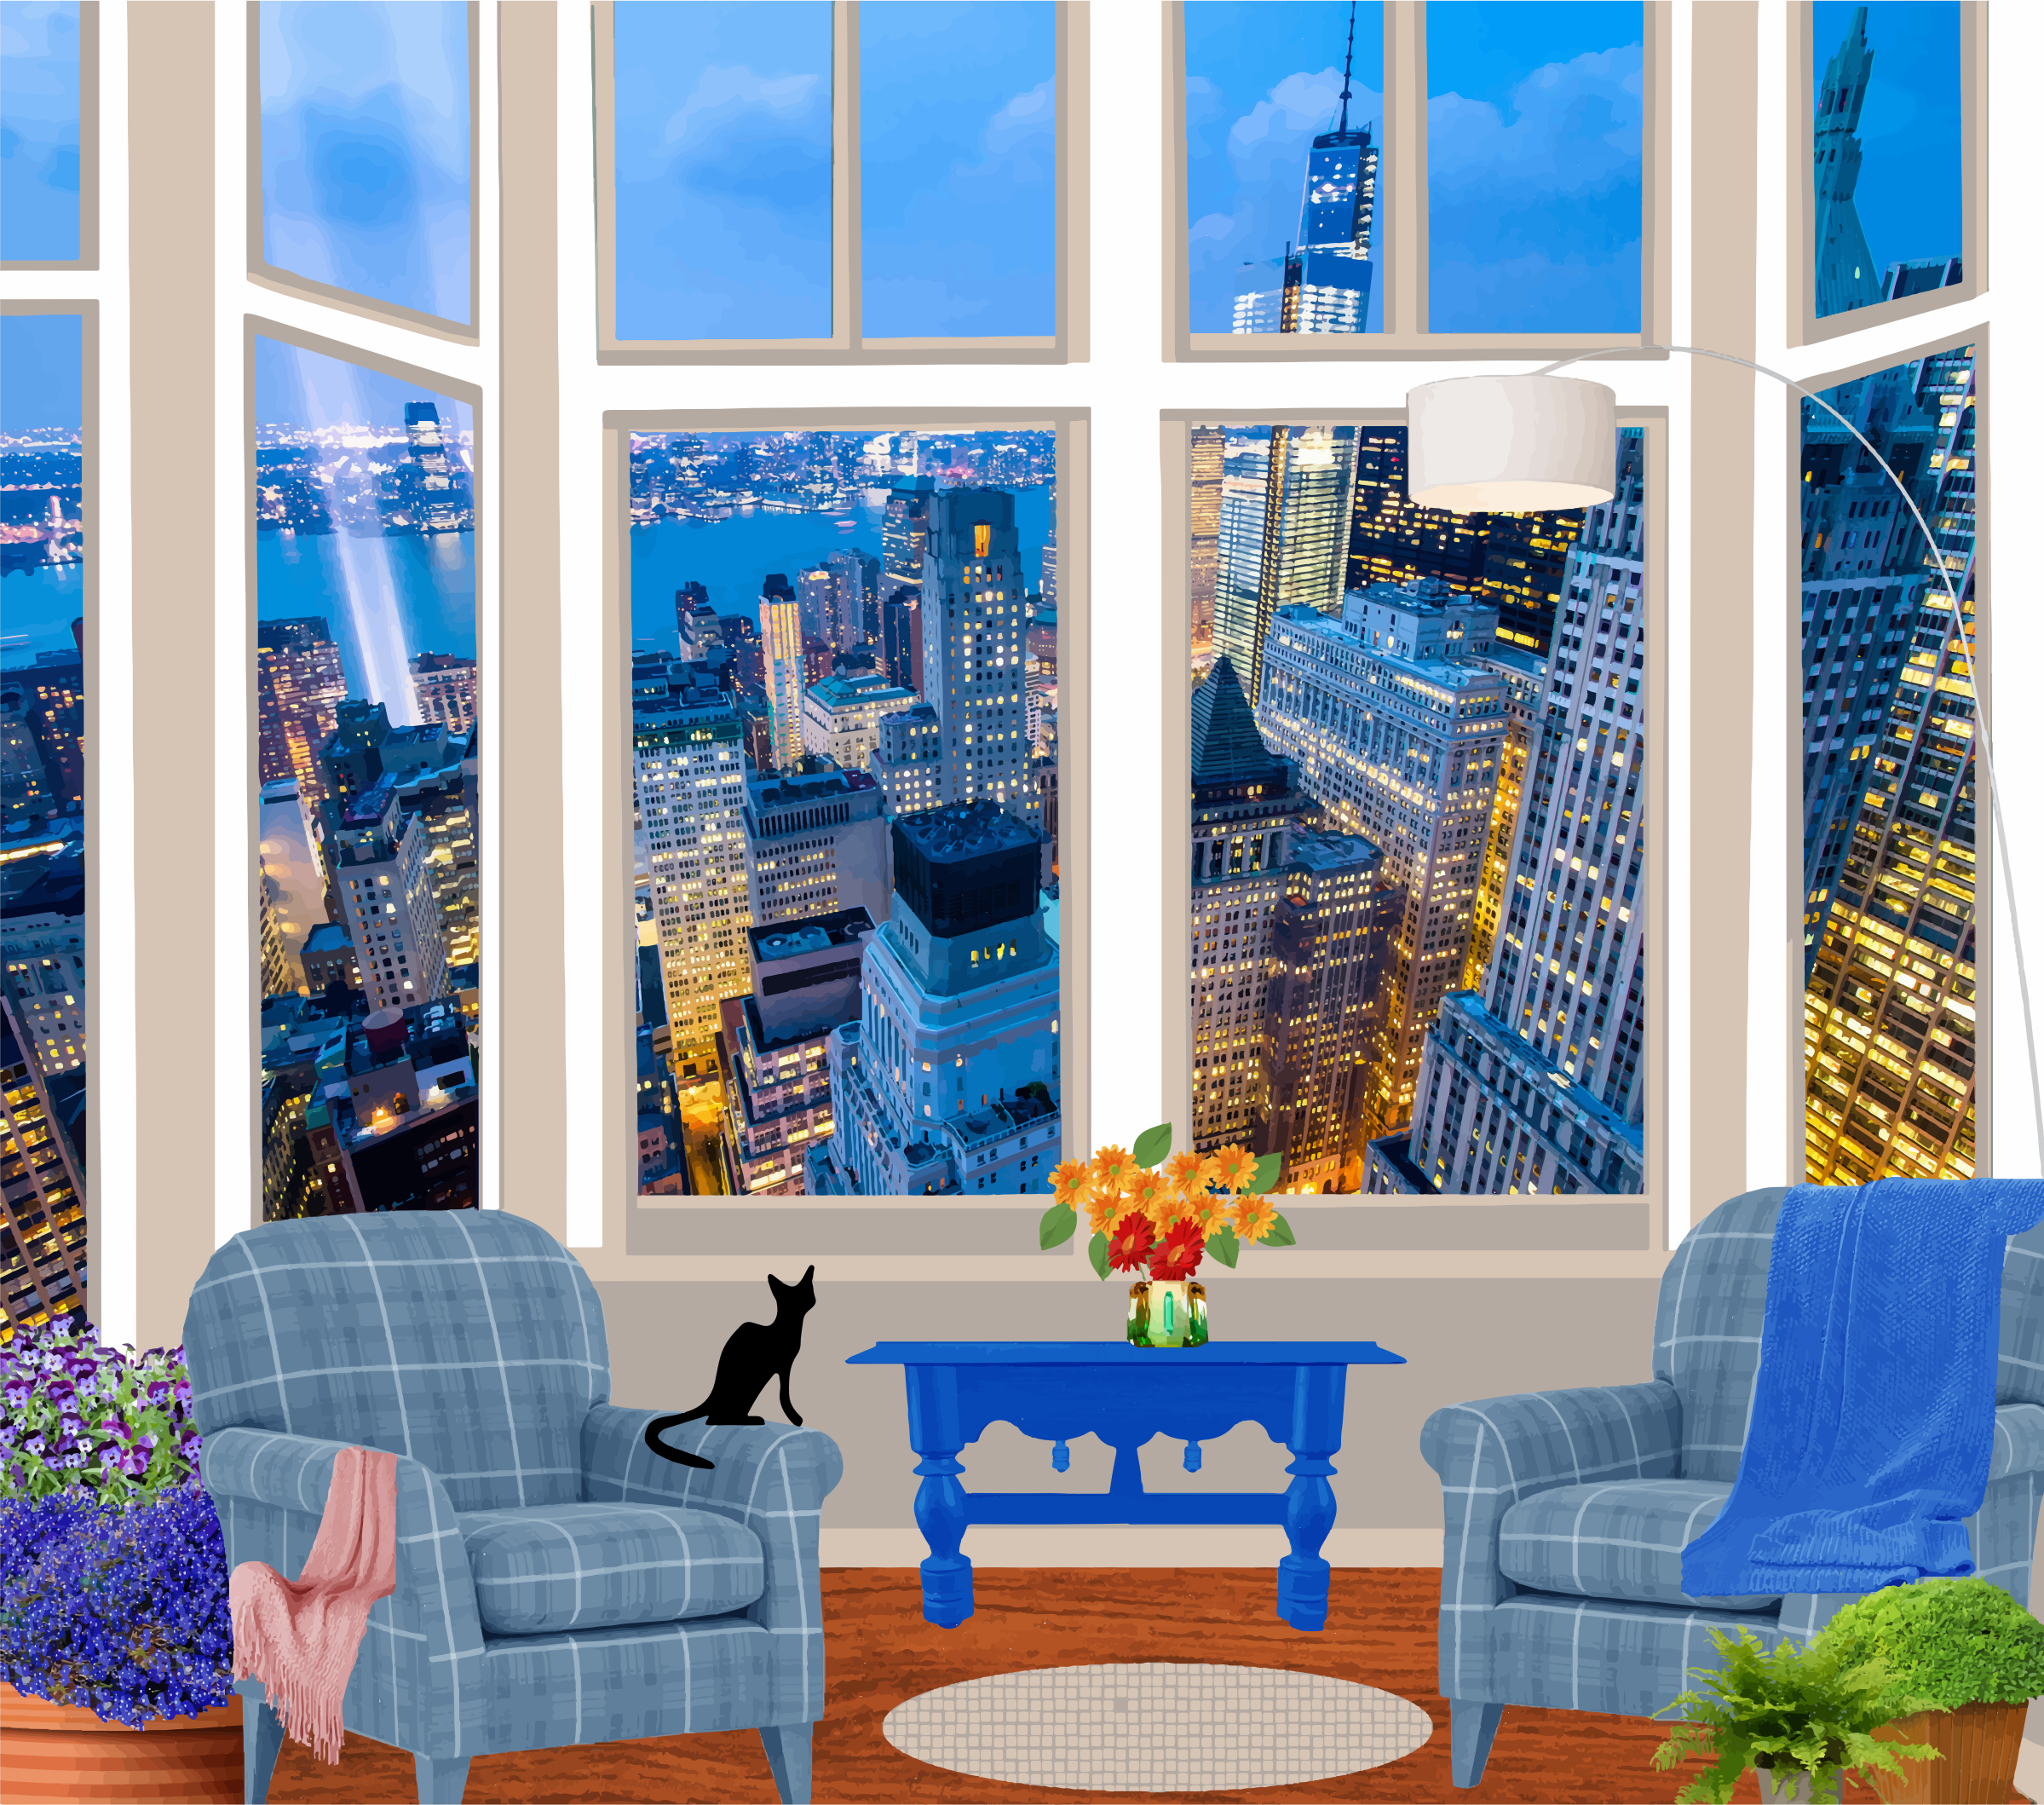 Fictional Apartment In A Skyscraper by GDJ